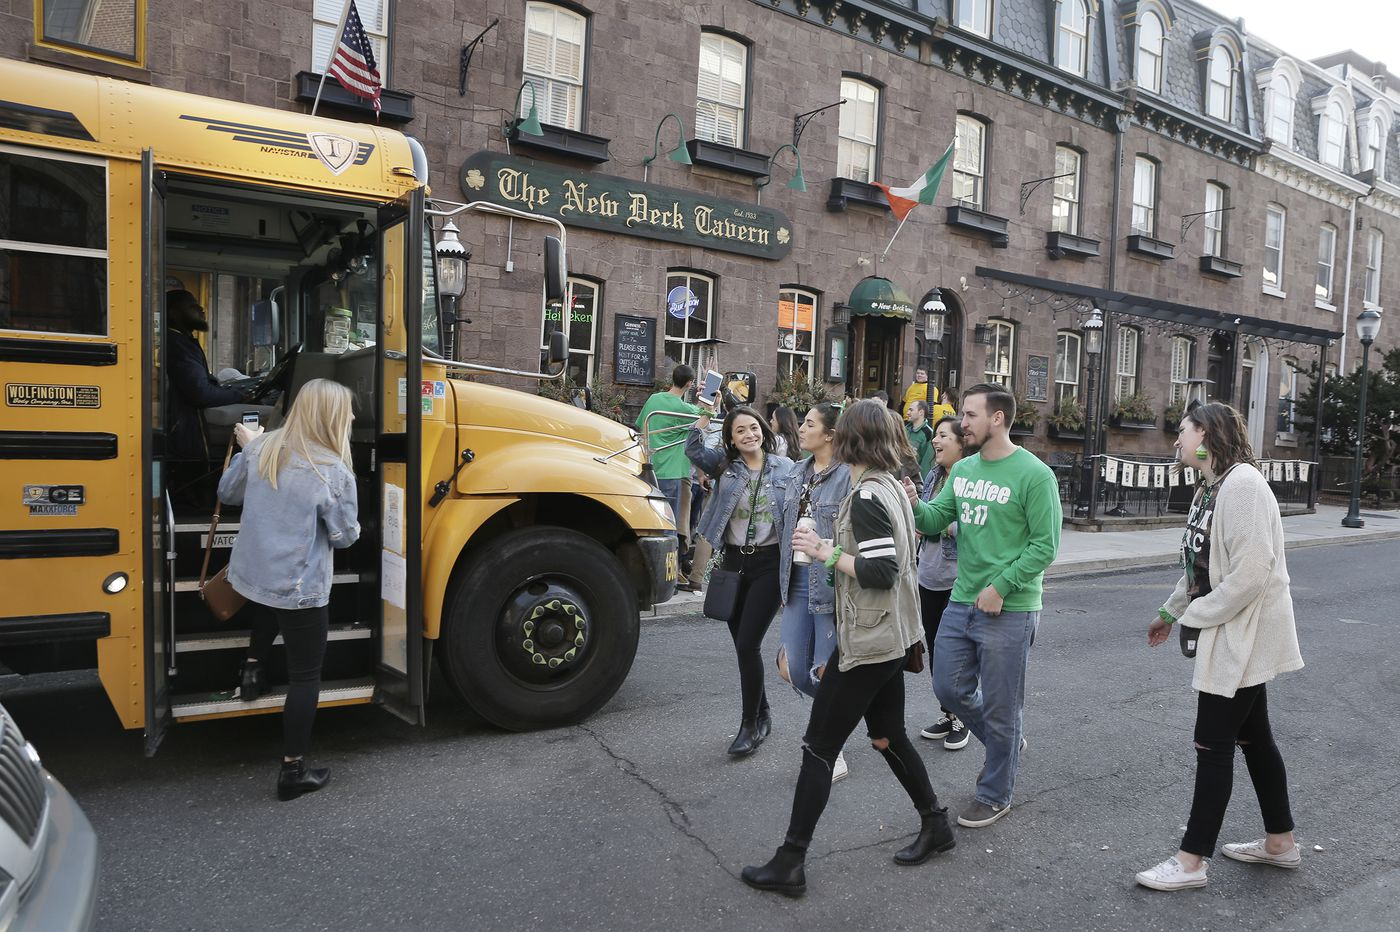 Erin Express buses are canceled, organizers announce